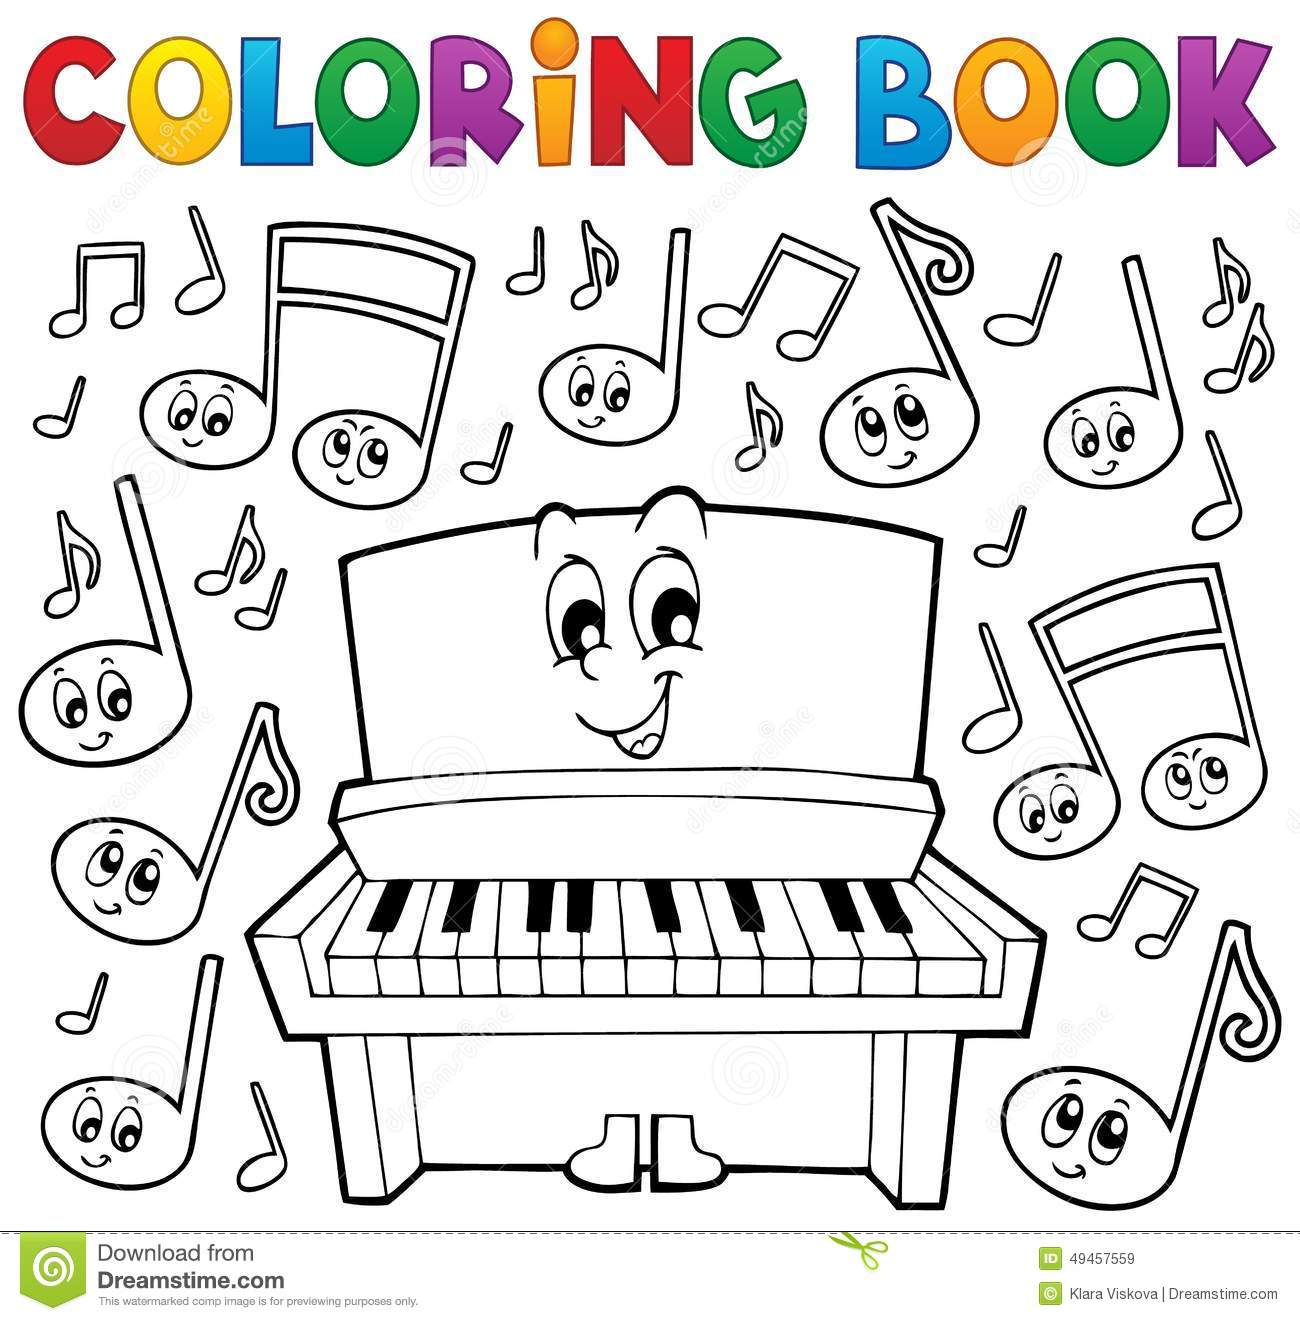 Coloring book kea - Coloring Book For Child Download 1